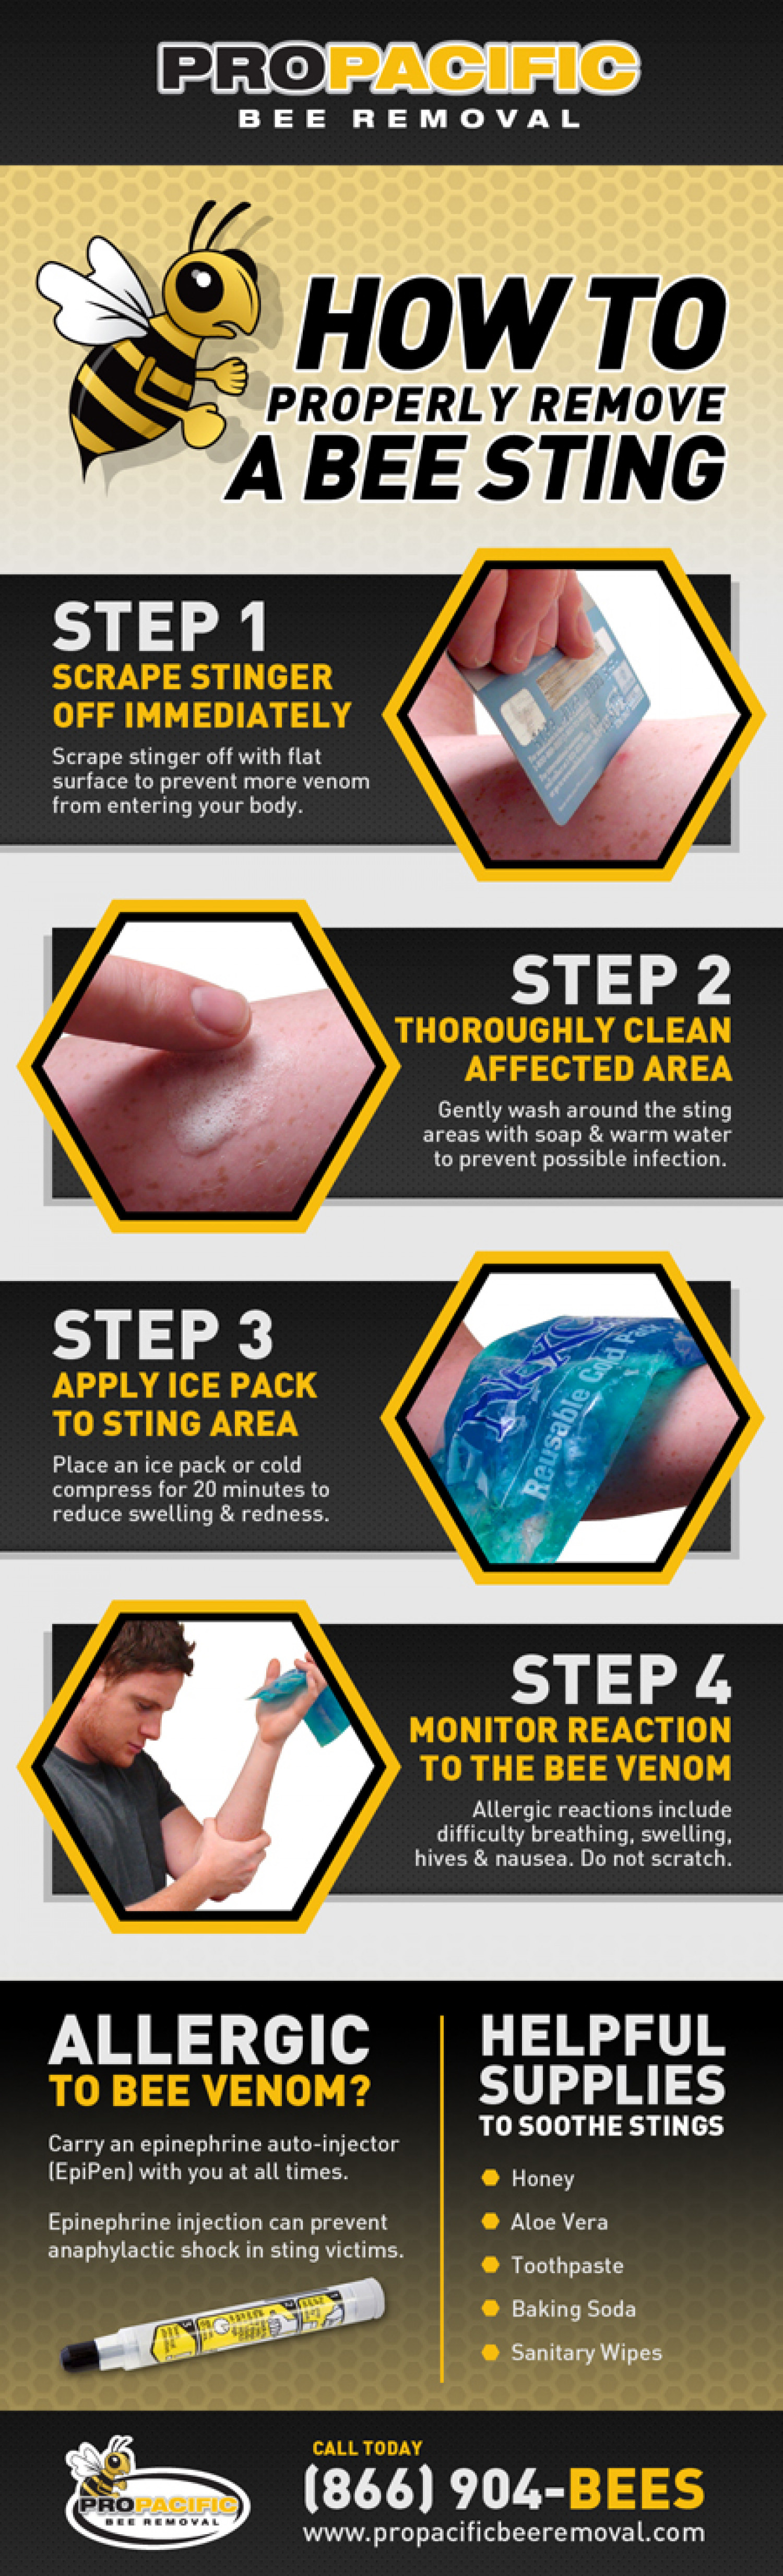 Properly Remove & Treat A Bee Sting Infographic